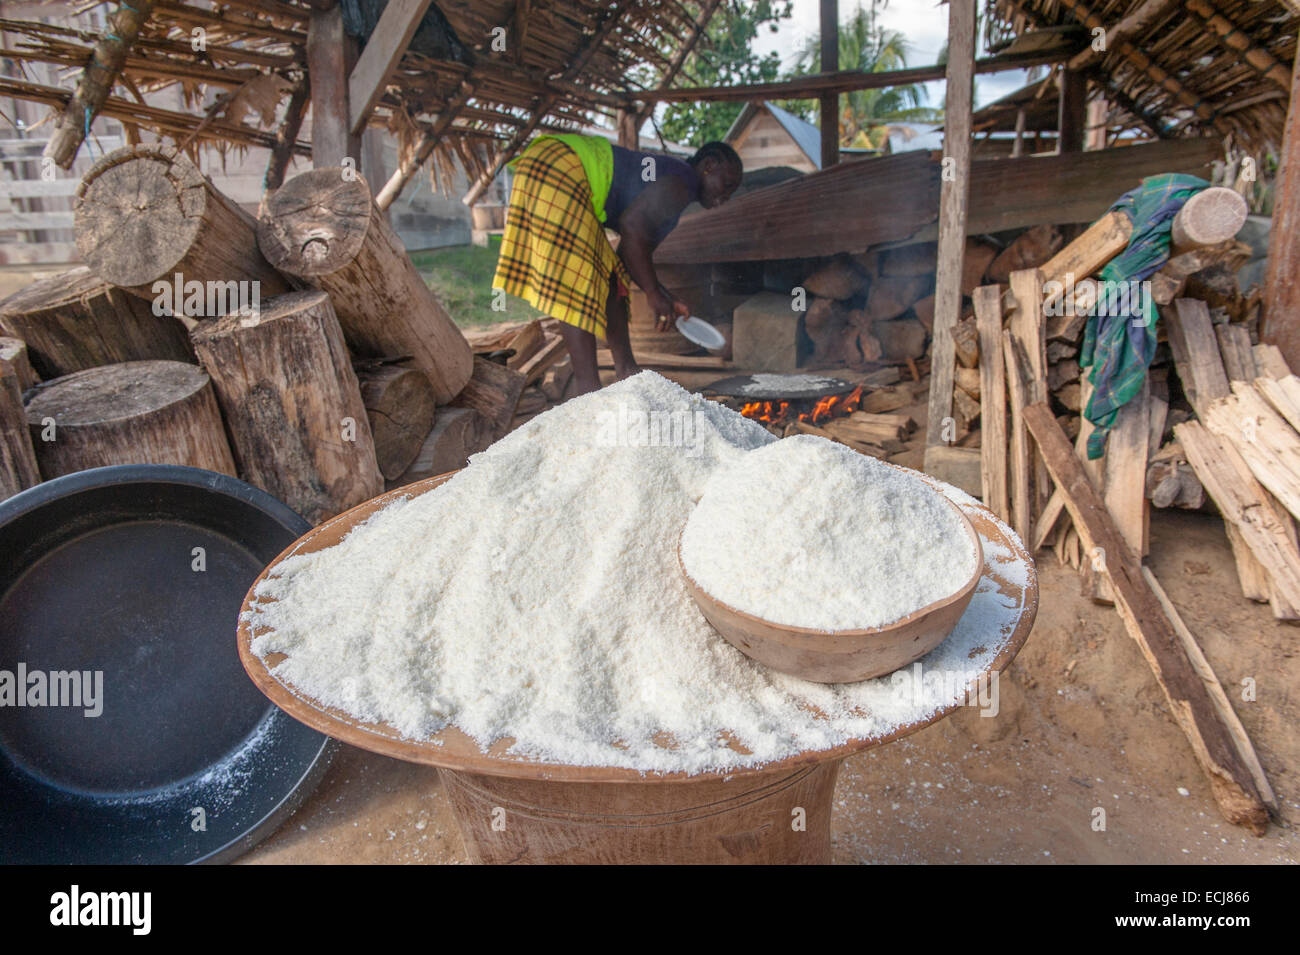 Preparation of Cassava bread, a traditional food of the indigenous and Maroon people of Suriname - Stock Image